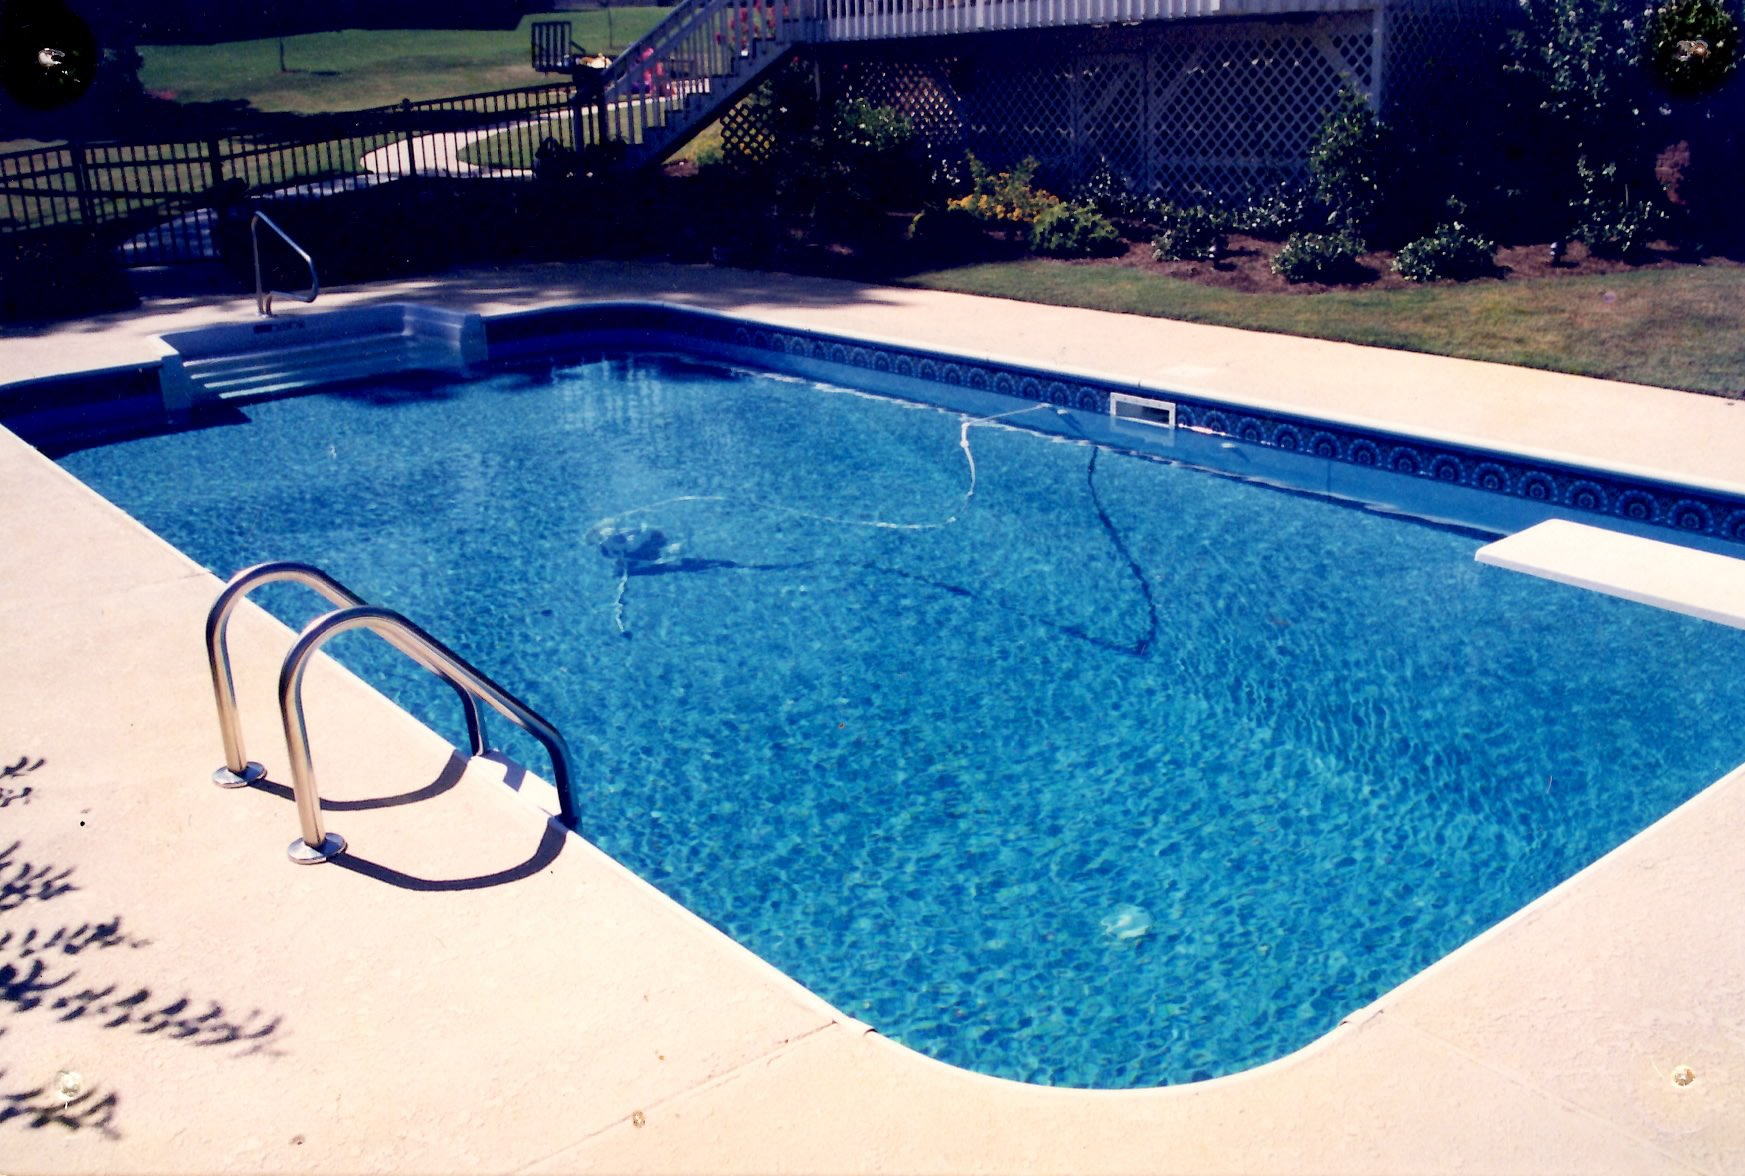 attractive with also tiles ideas awesome system decals materials floor pictures cleaning fascinating swimming plan paint tile outdoors inspirations flooring padding designs design pool